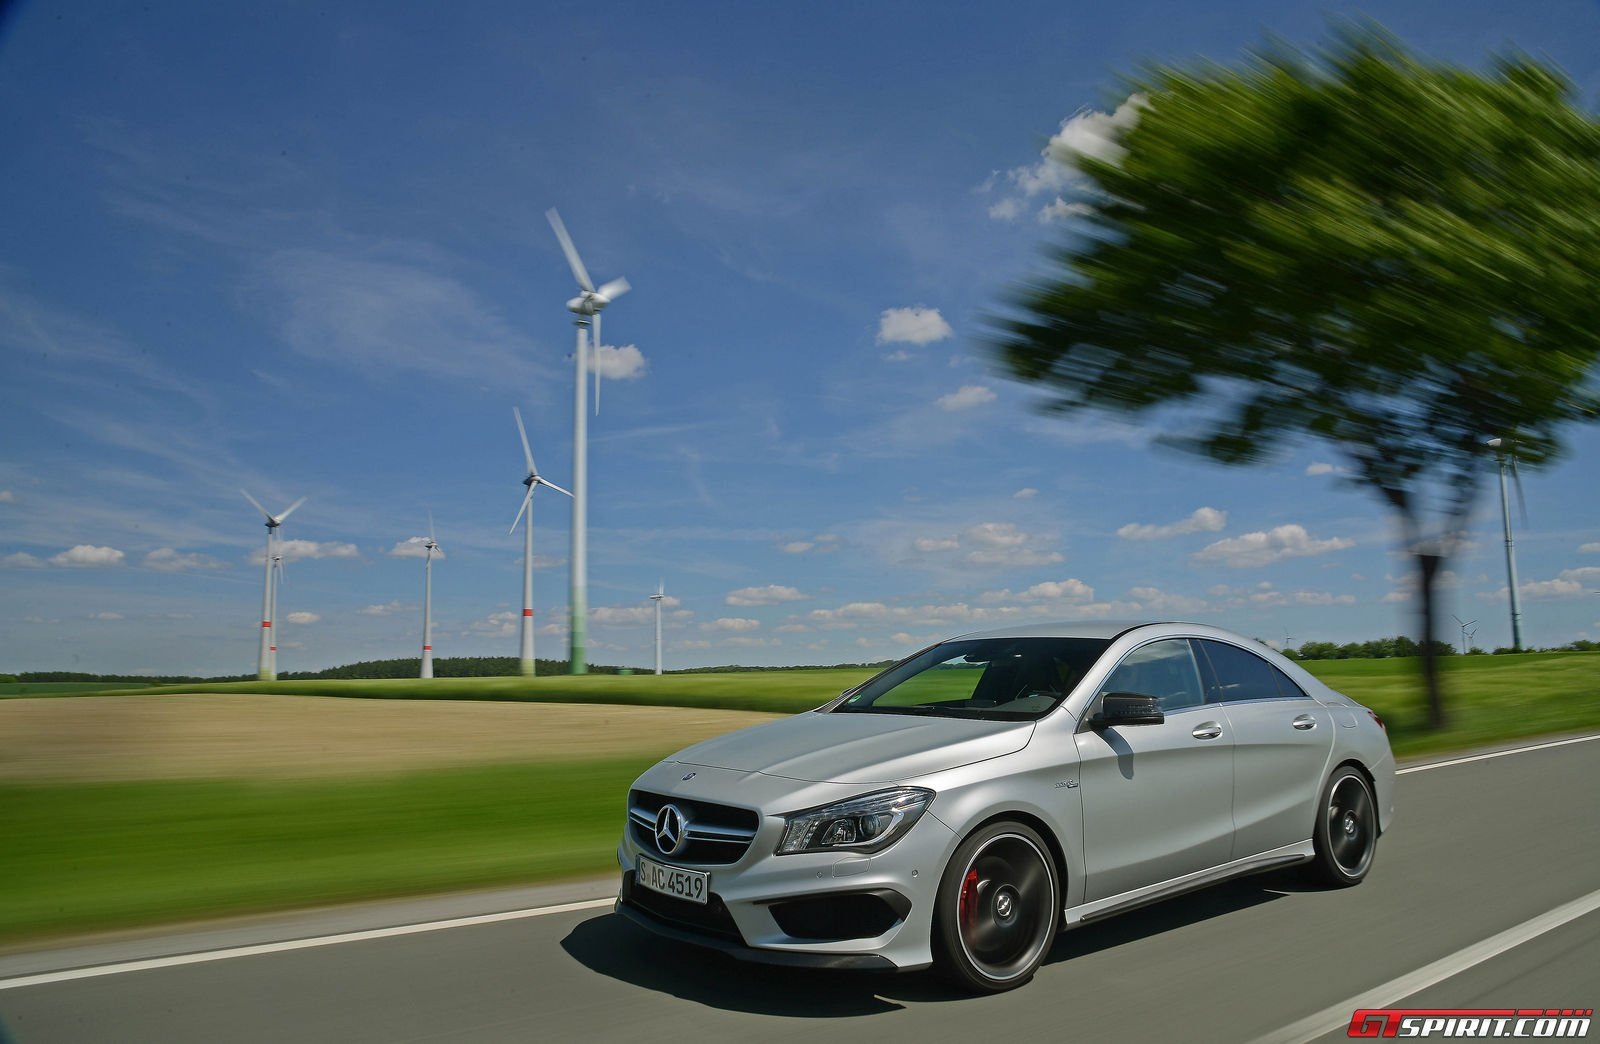 Road test 2014 mercedes benz cla 45 amg gtspirit for 2014 mercedes benz cla 45